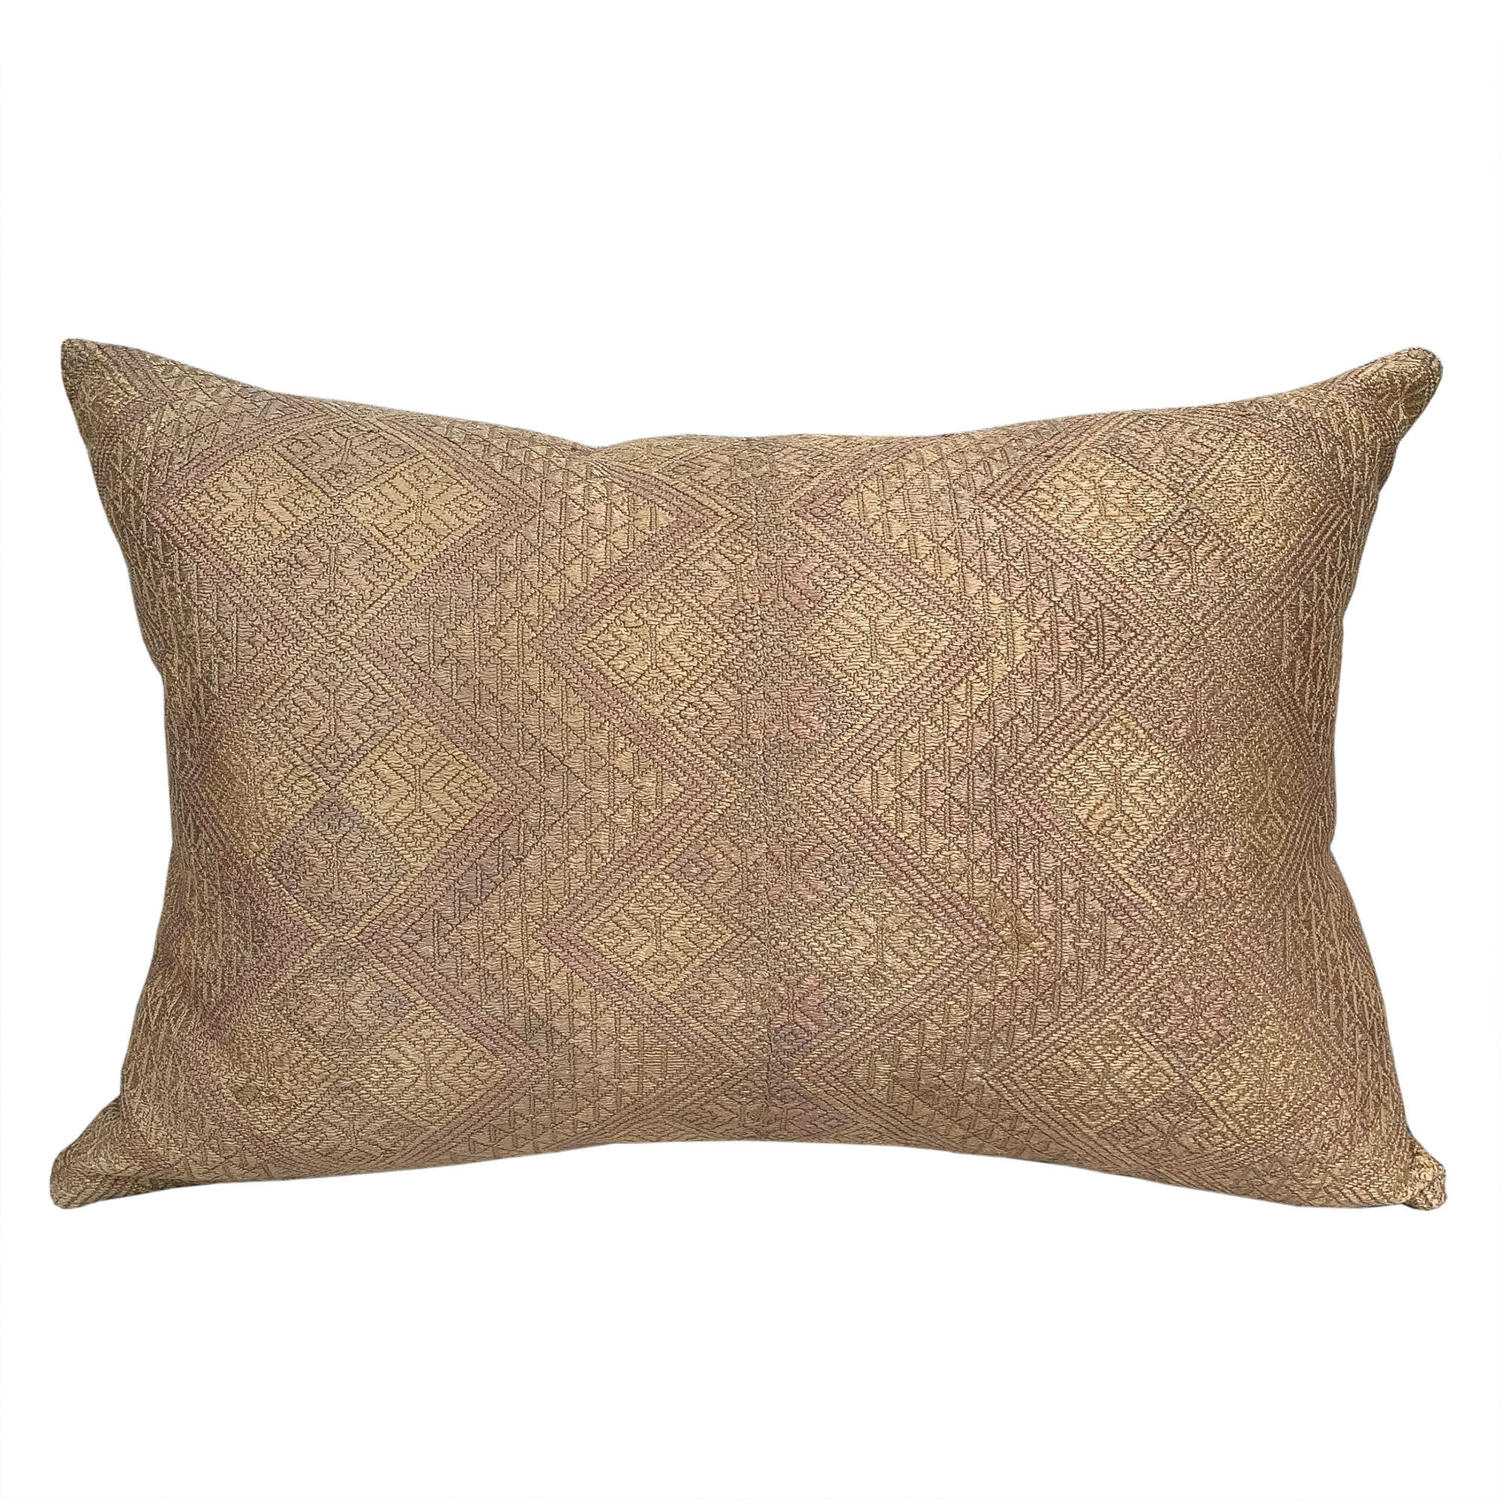 Yao Quing Dynasty wedding blanket cushions